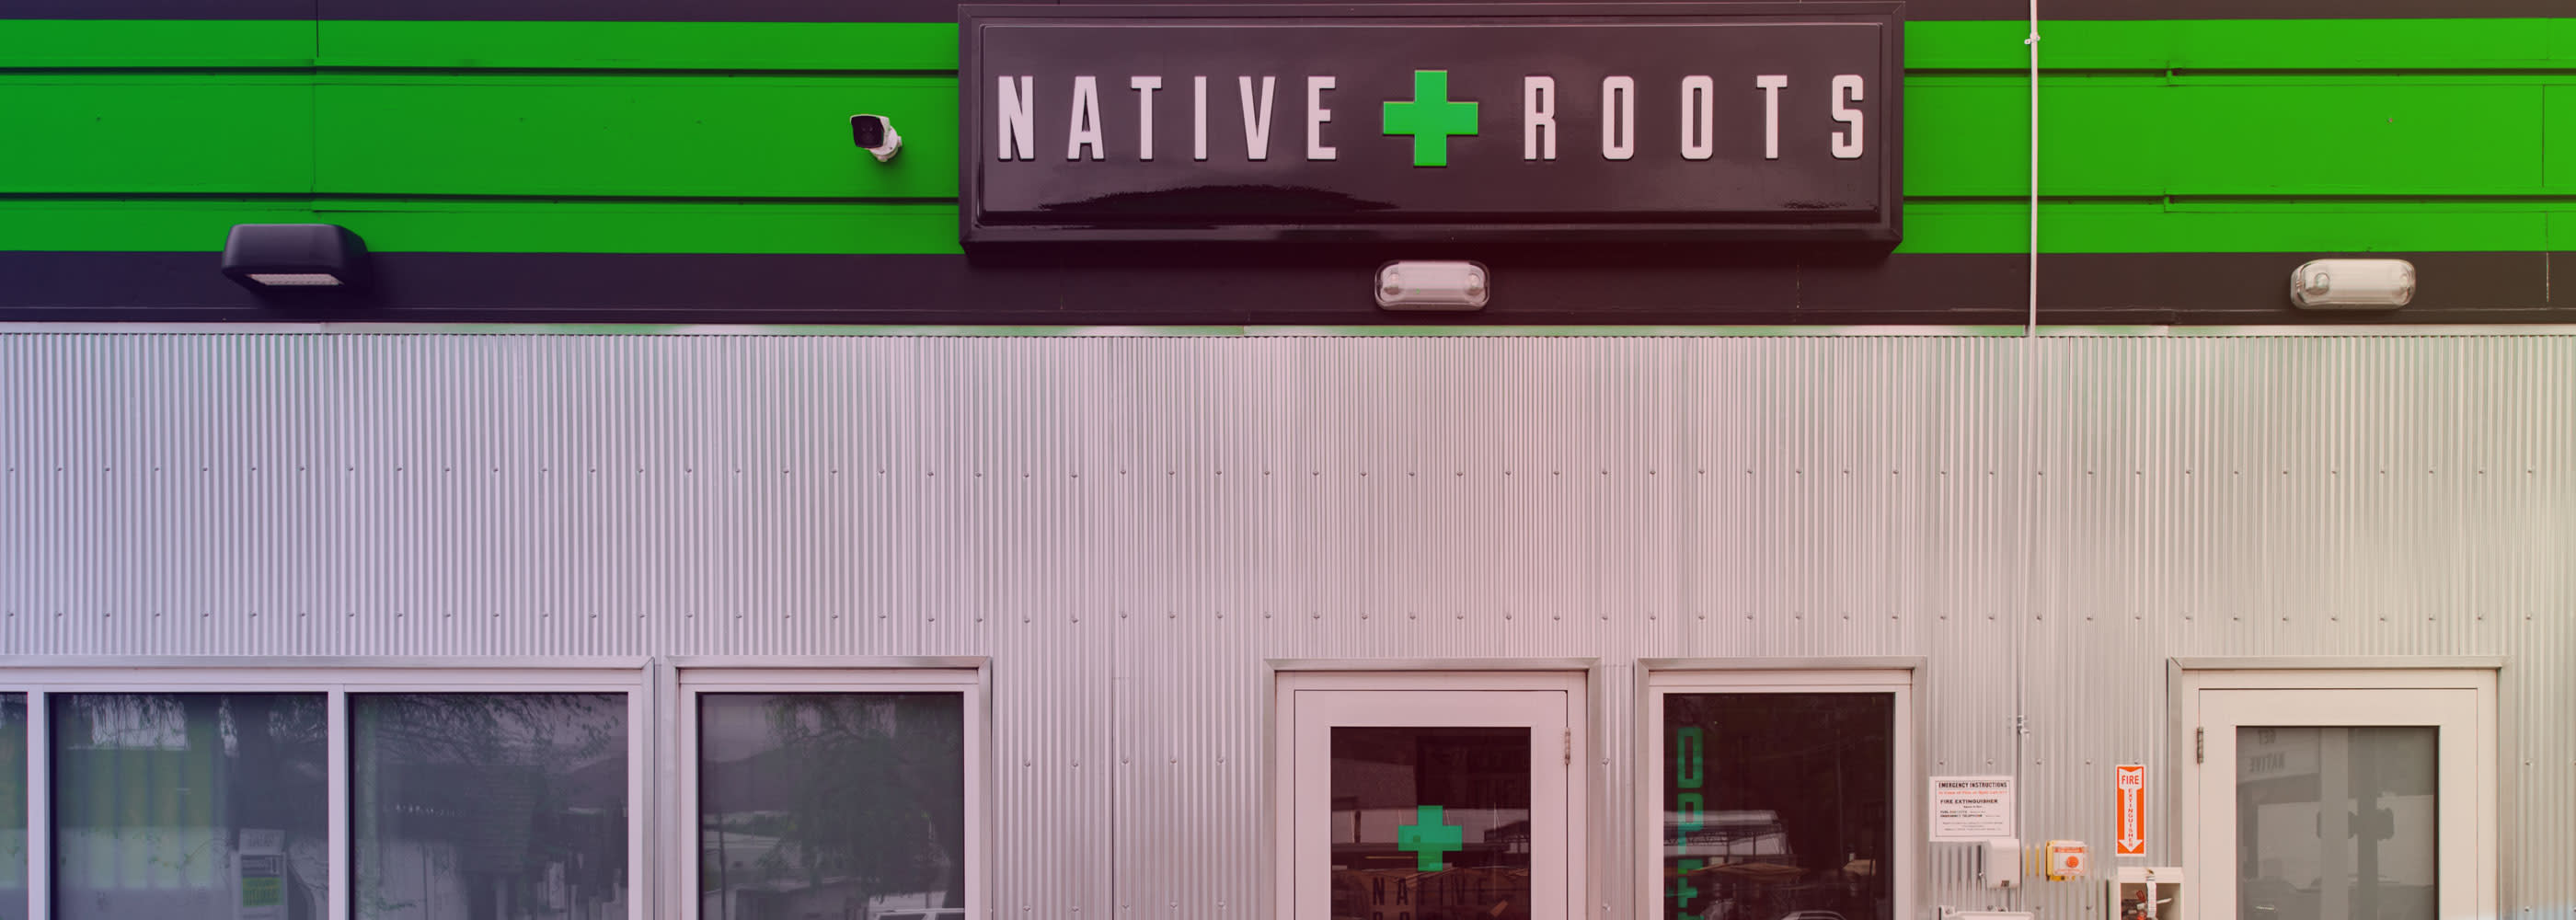 Native Roots Tejon Location -  Medical Marijana Dispensary and Wellness Store